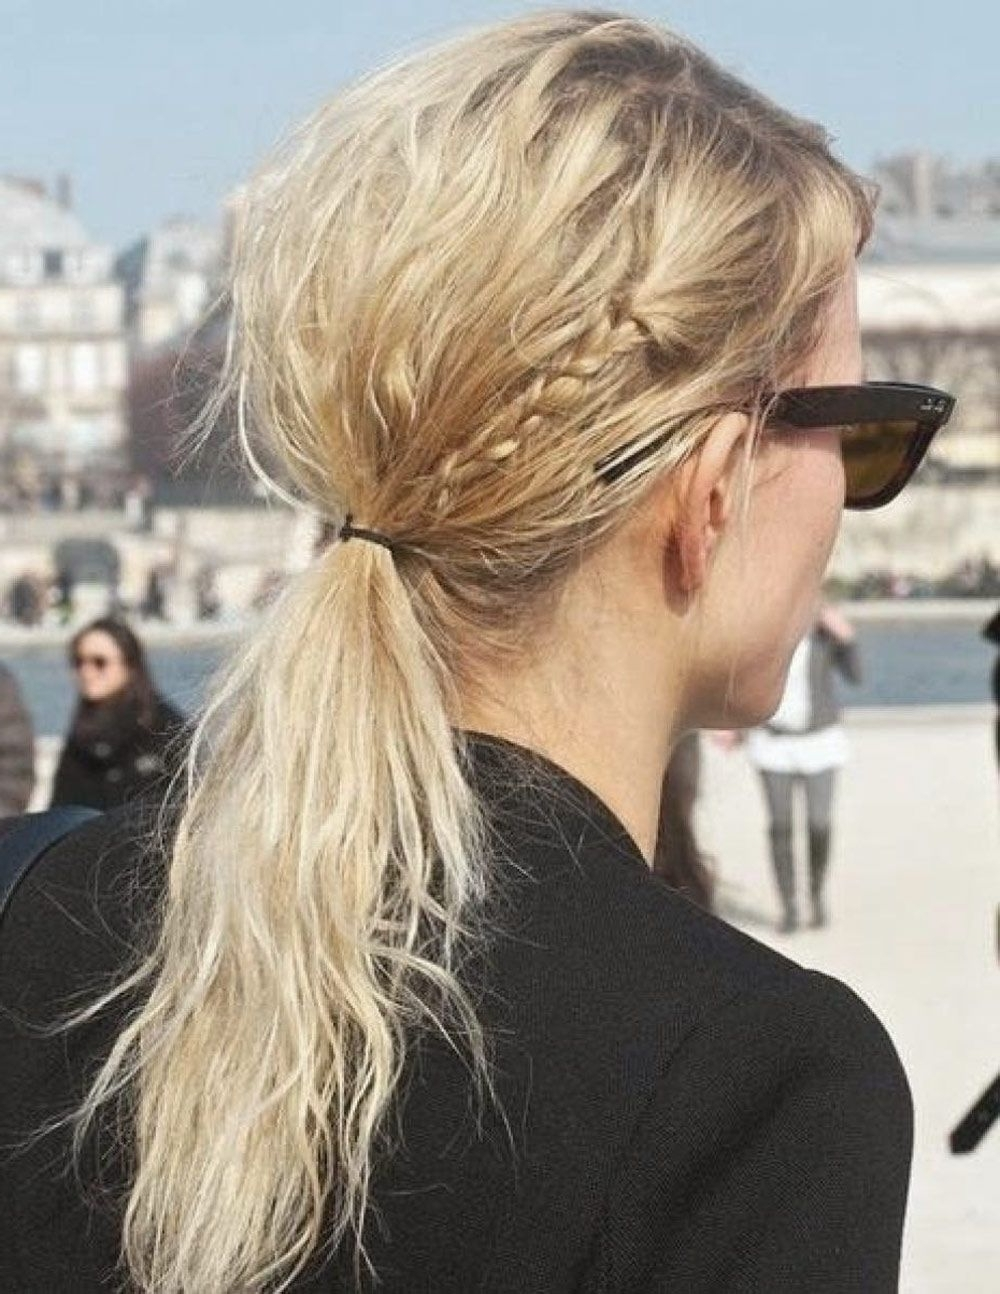 Latest Lustrous Blonde Updo Ponytail Hairstyles Pertaining To Low, Messy, Pony, Bun, Hair, Inspiration, Runway, Backstage, Oracle (View 11 of 20)